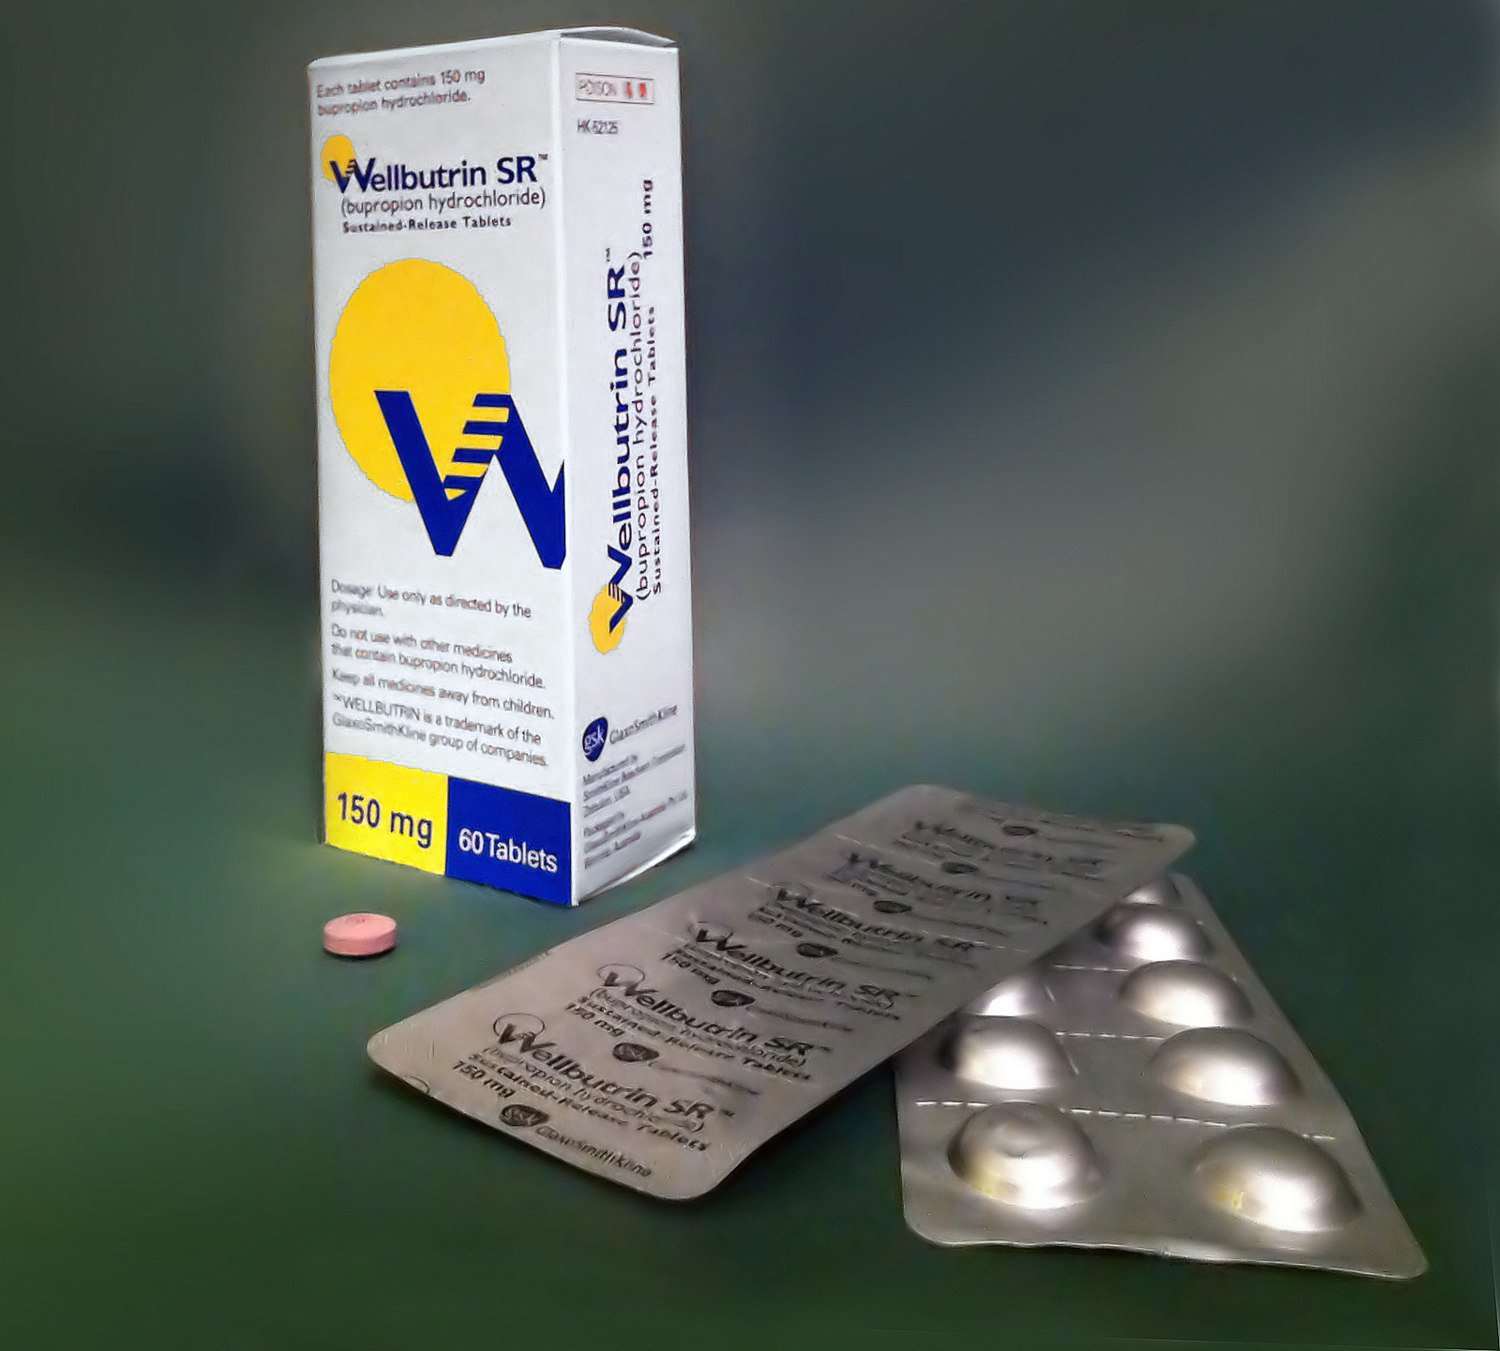 File:Wellbutrin SR tablets 150mg.jpg - Wikimedia Commons